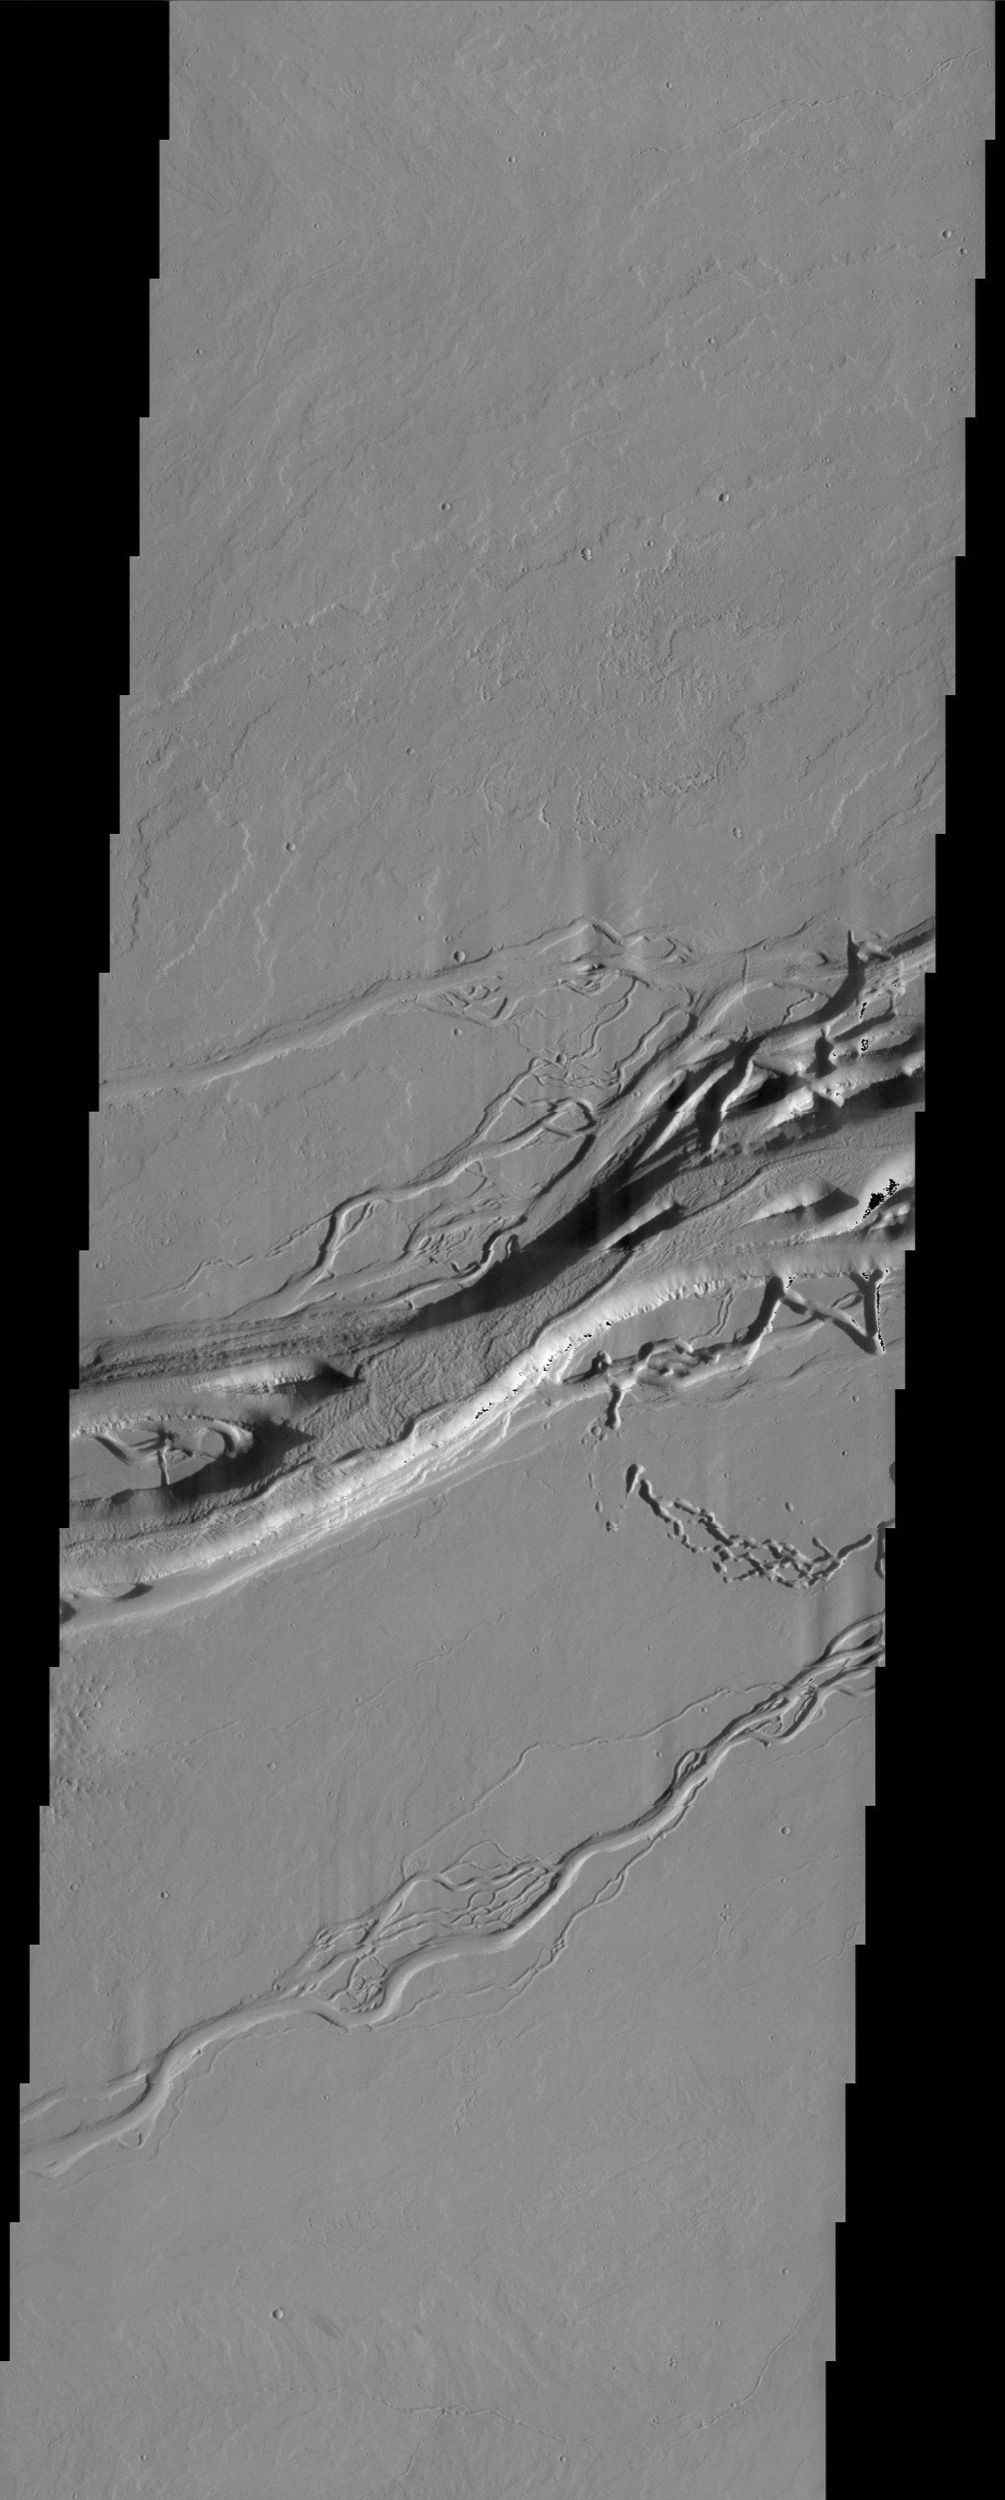 This image from NASA's Mars Odyssey spacecraft shows the Olympica Fossae channel system located east of the Olympus Mons volcano in Tharsis. These anastomosing channels cut numerous lava flows indicating that the channels are younger than the lava flows.